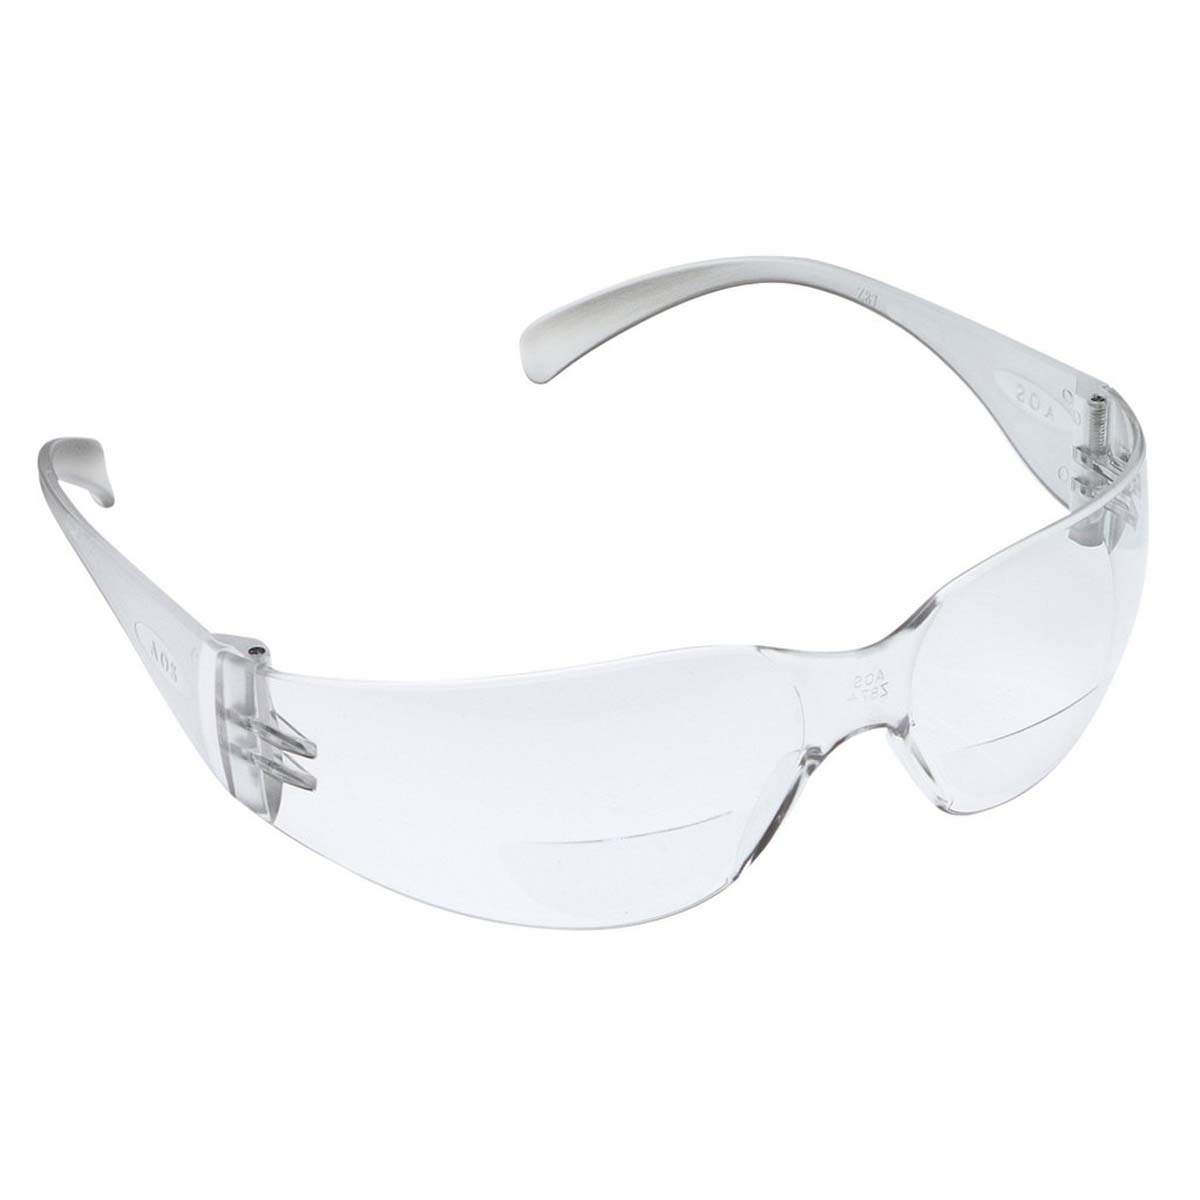 "3Mâ""¢ Virtuaâ""¢ Reader Protective Eyewear 11515-00000-20 Clear Anti-Fog Lens, Clear Temple, +2.5 Diopter"